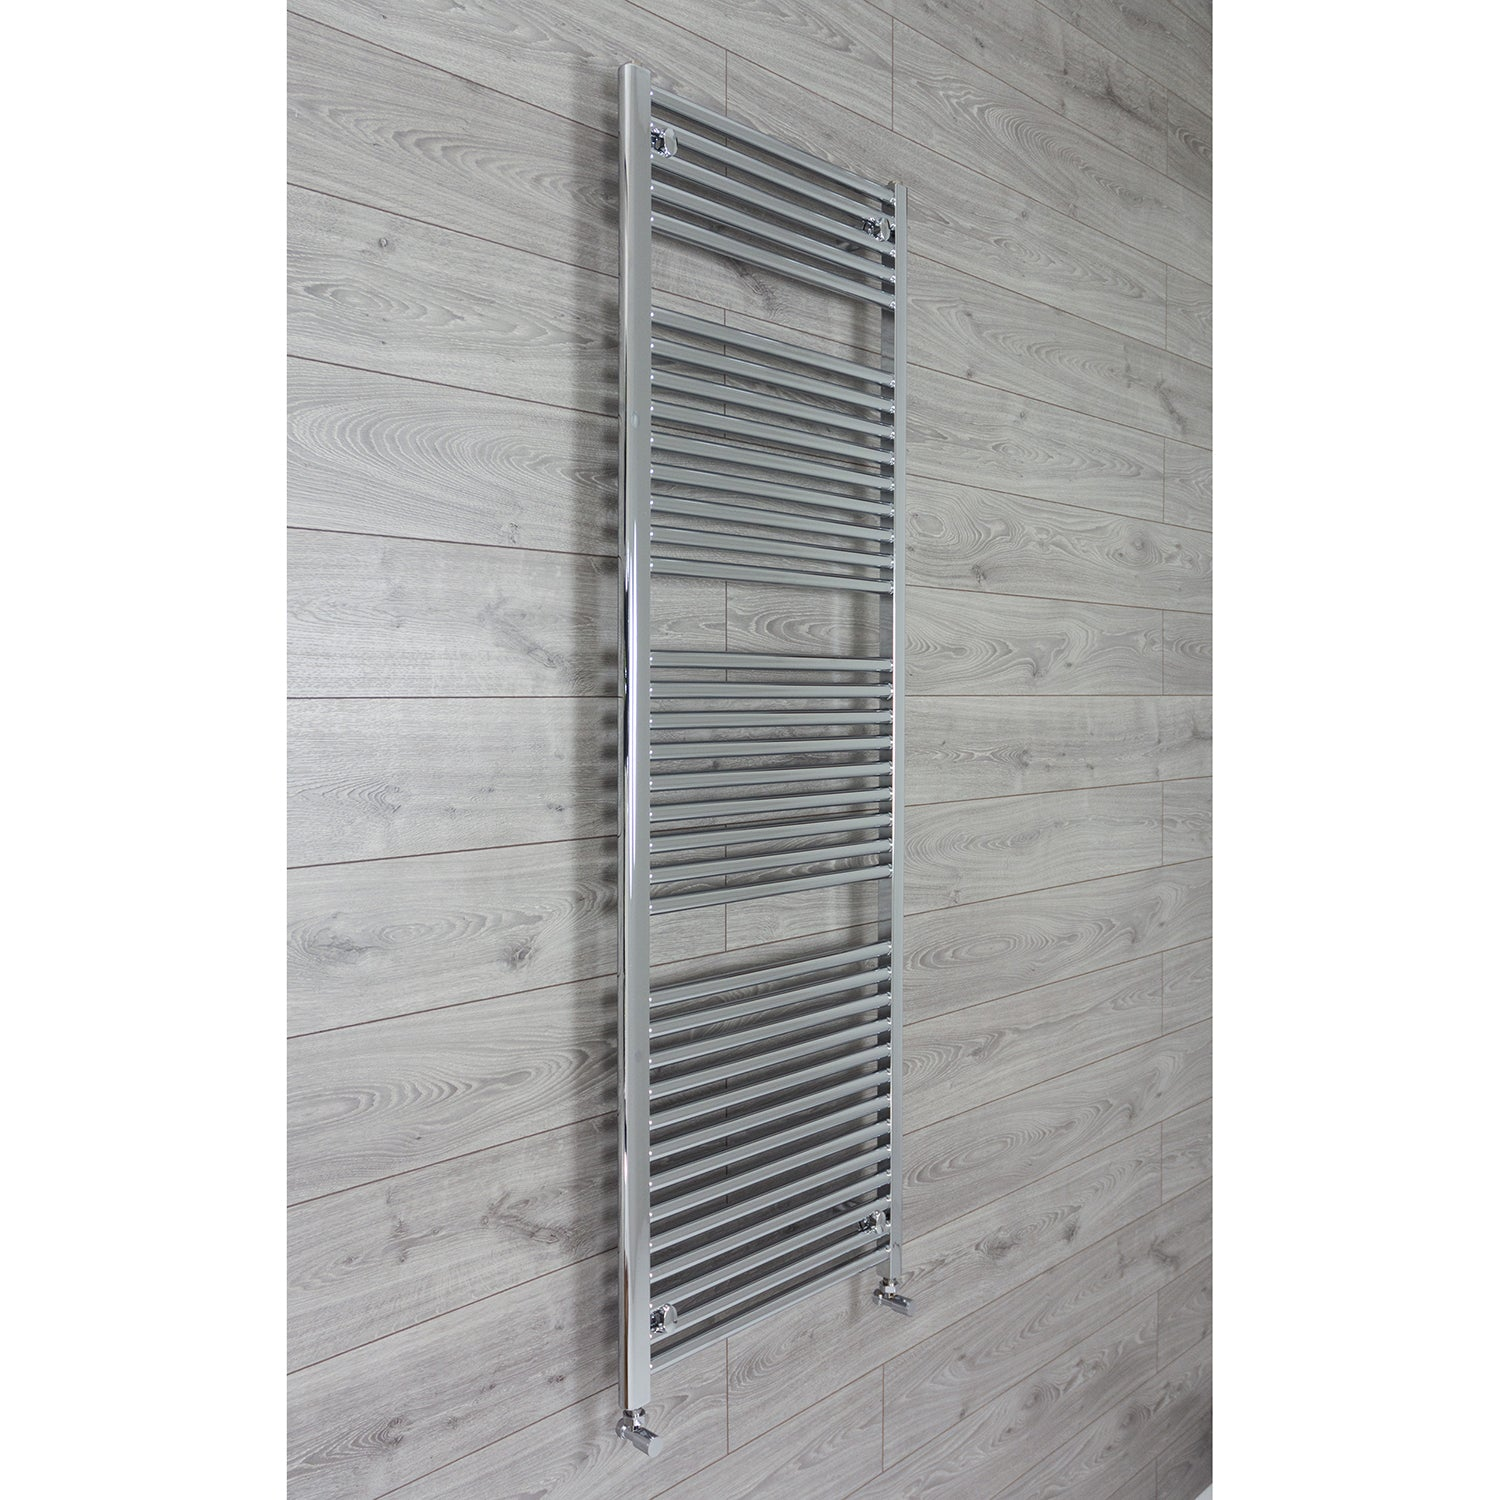 600mm Wide 1744mm High 25mm Tubes Curved Chrome Heated Towel Rail Radiator HTR,With Angled Valve